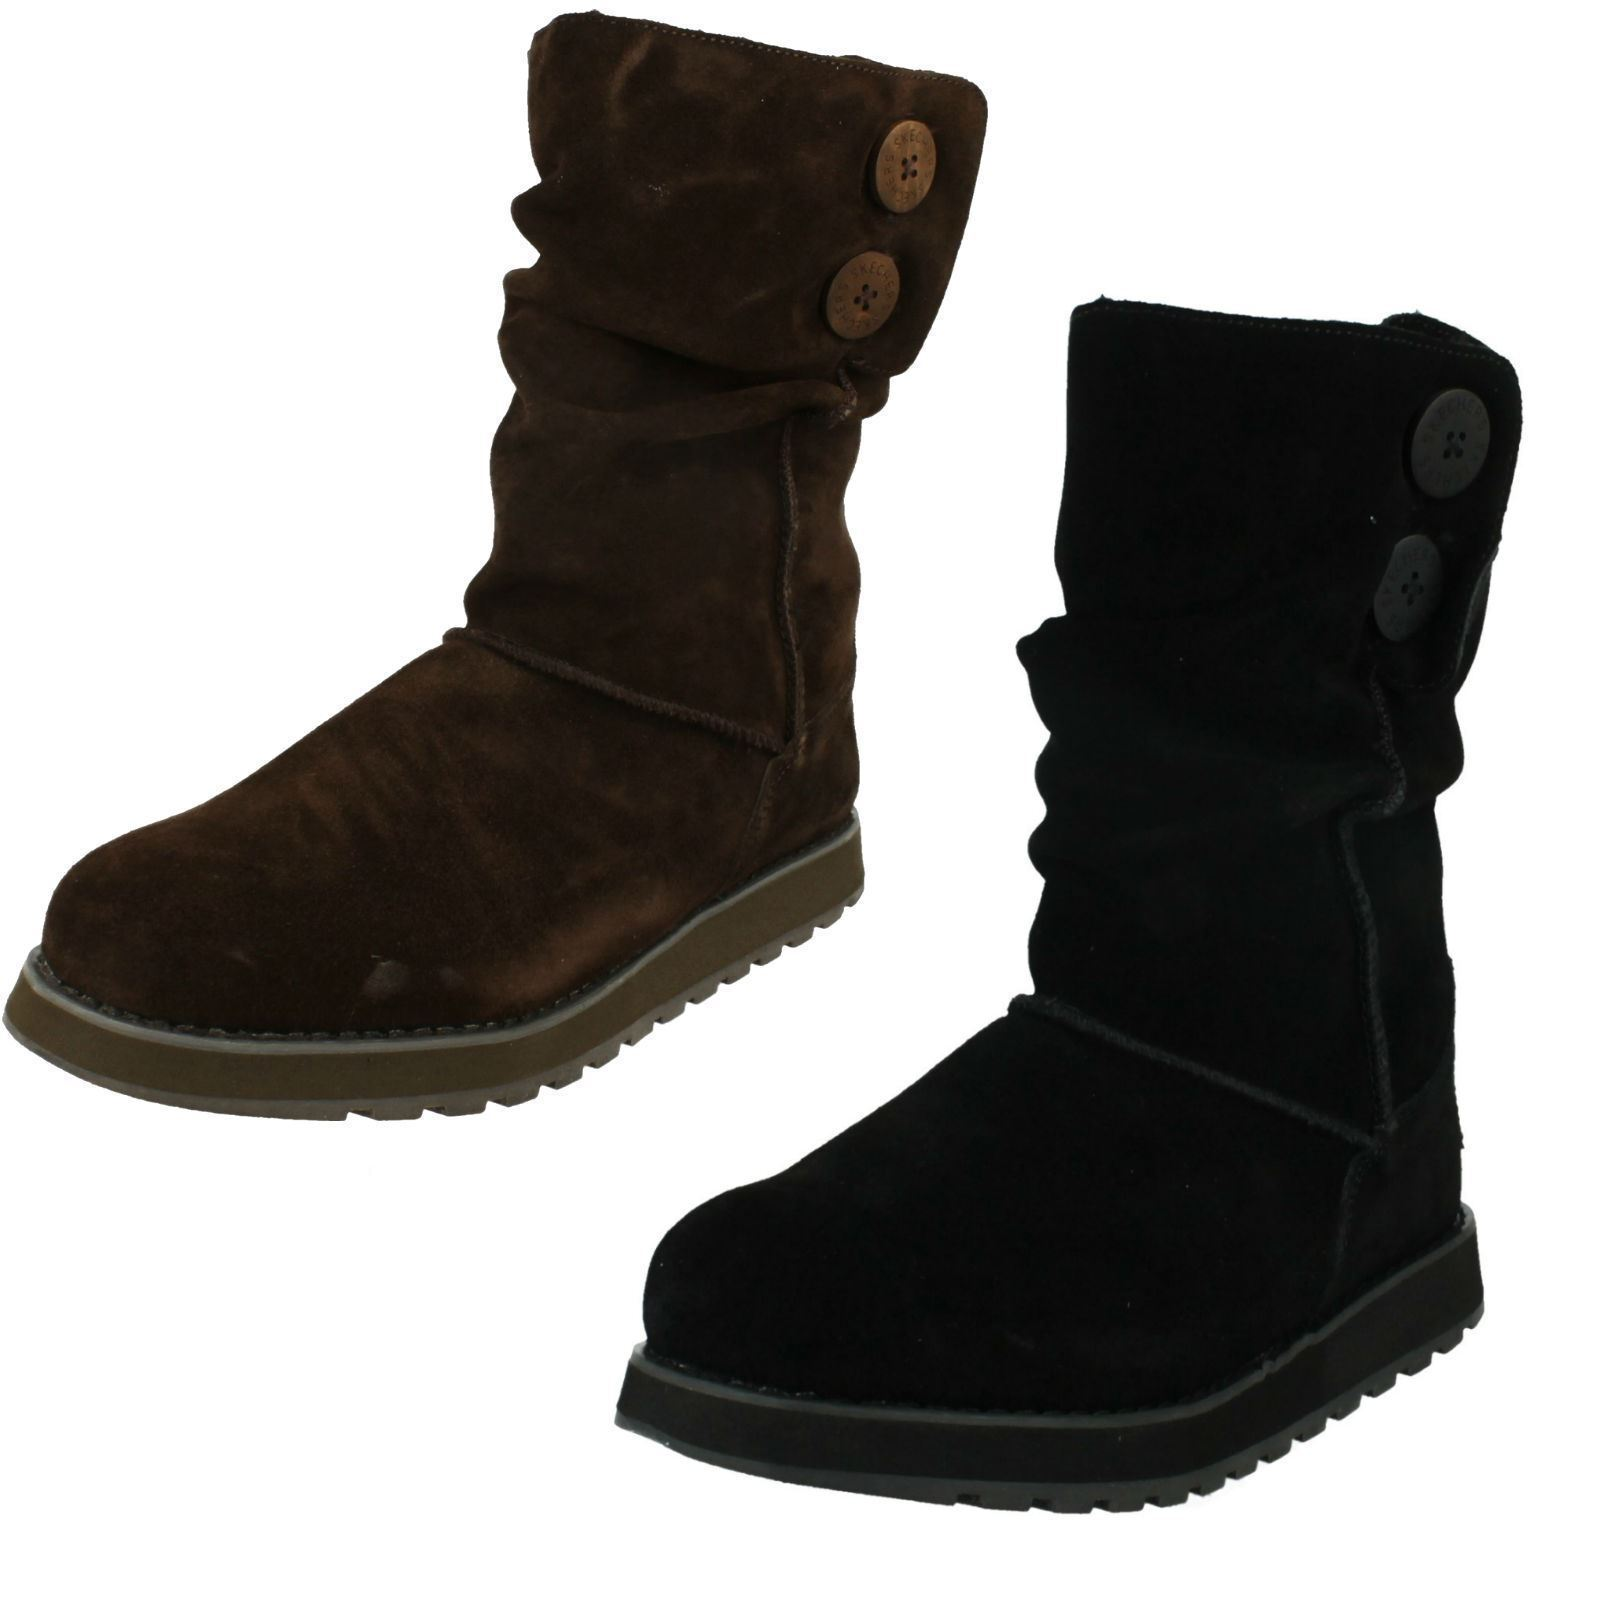 Donna Skechers 47221 Ricordo - Freezing Temps Camoscio Casual Stivali Metà